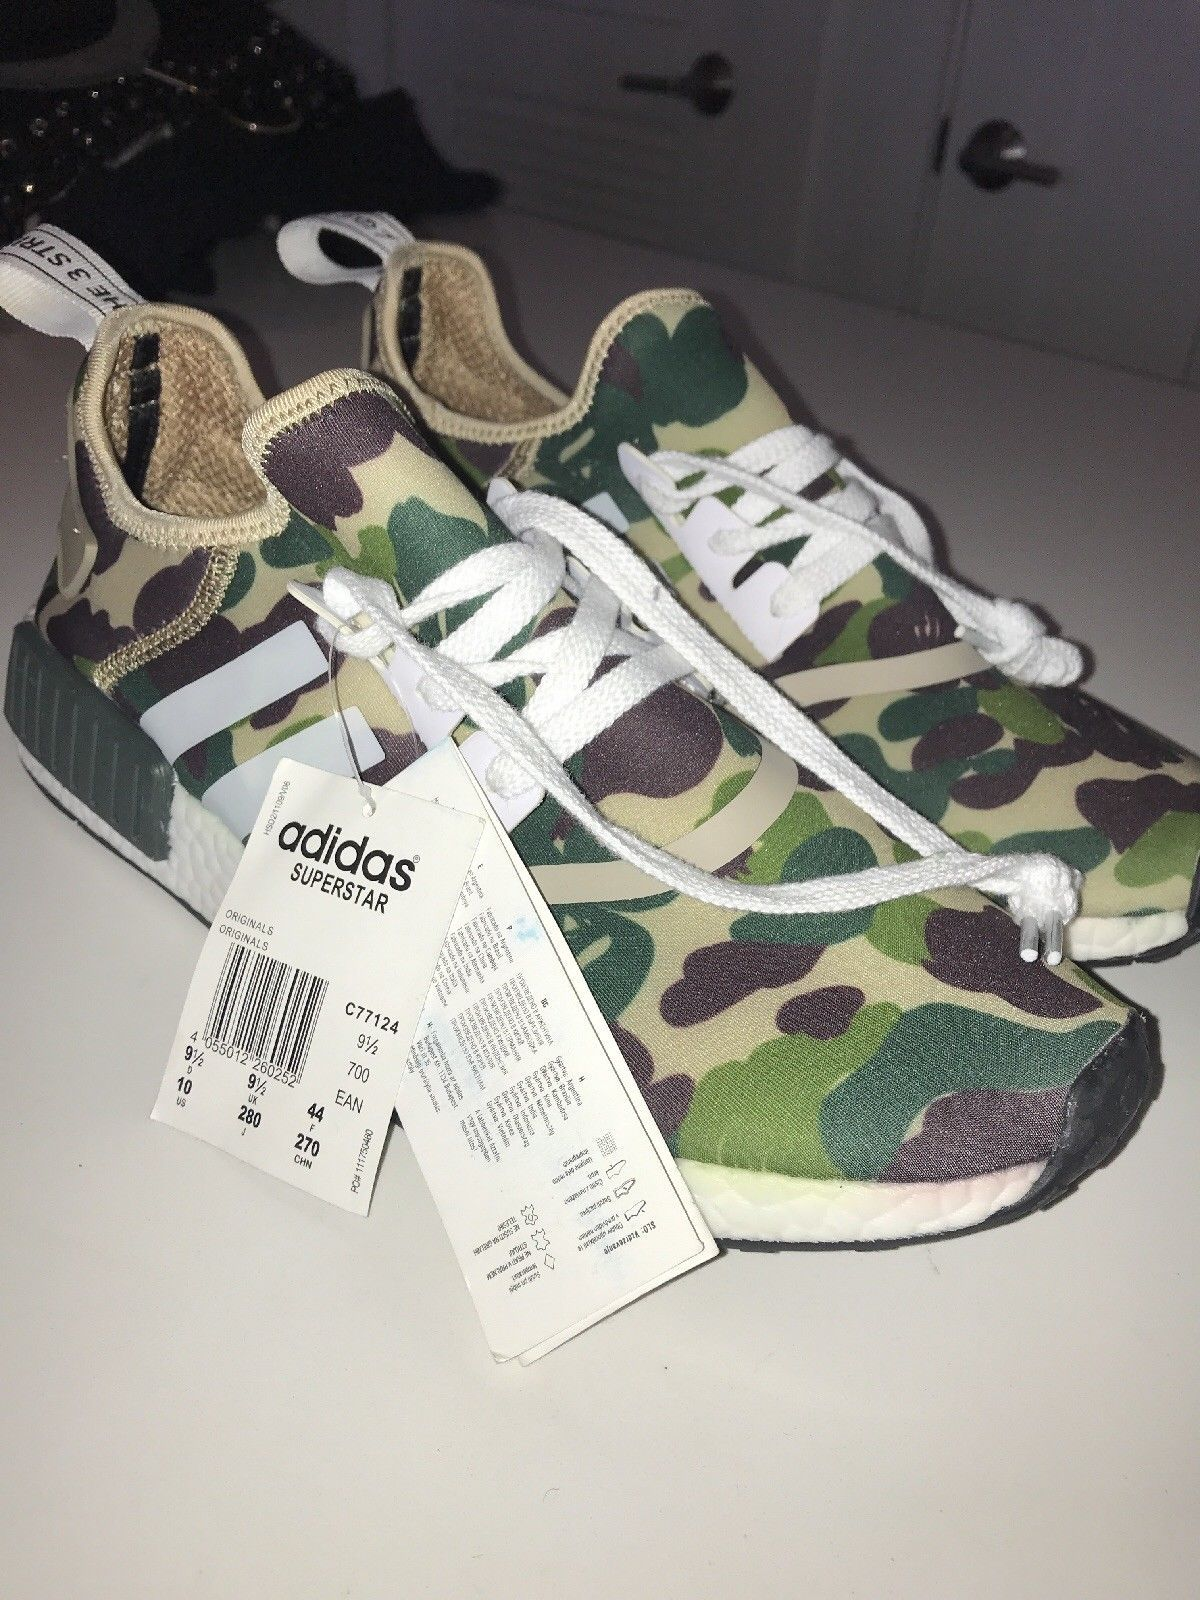 7e03a3cbe4678 Adidas NMD X Green  Camo Bape shoes SZ 10  Trending  Hot  Fashion  Shop   Adidas  Bape  Snowboarding  BapeX  AdidasBapeX  Clothing  Trend  Popular   Buy  ad ...